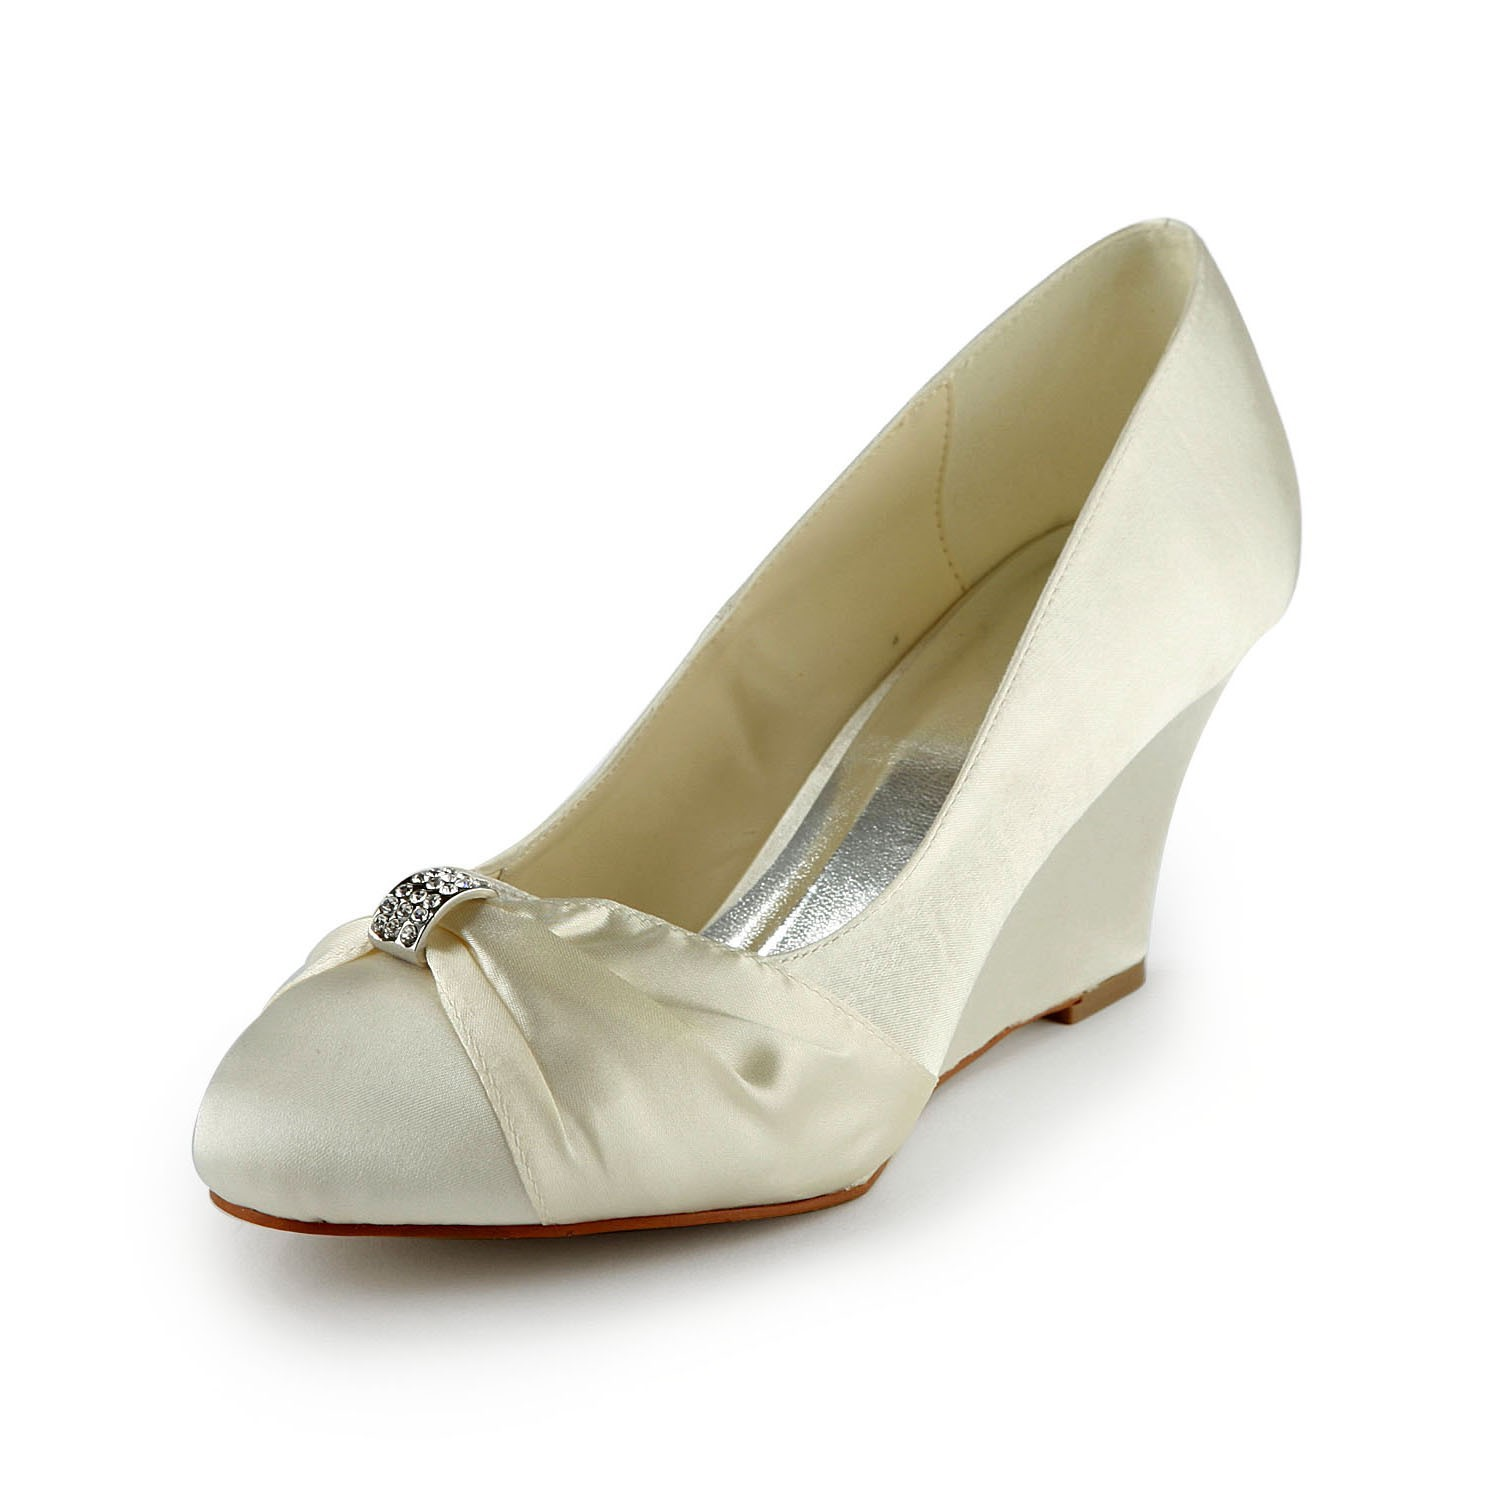 Women's Satin Wedge Heel Wedges With Rhinestone Ivory